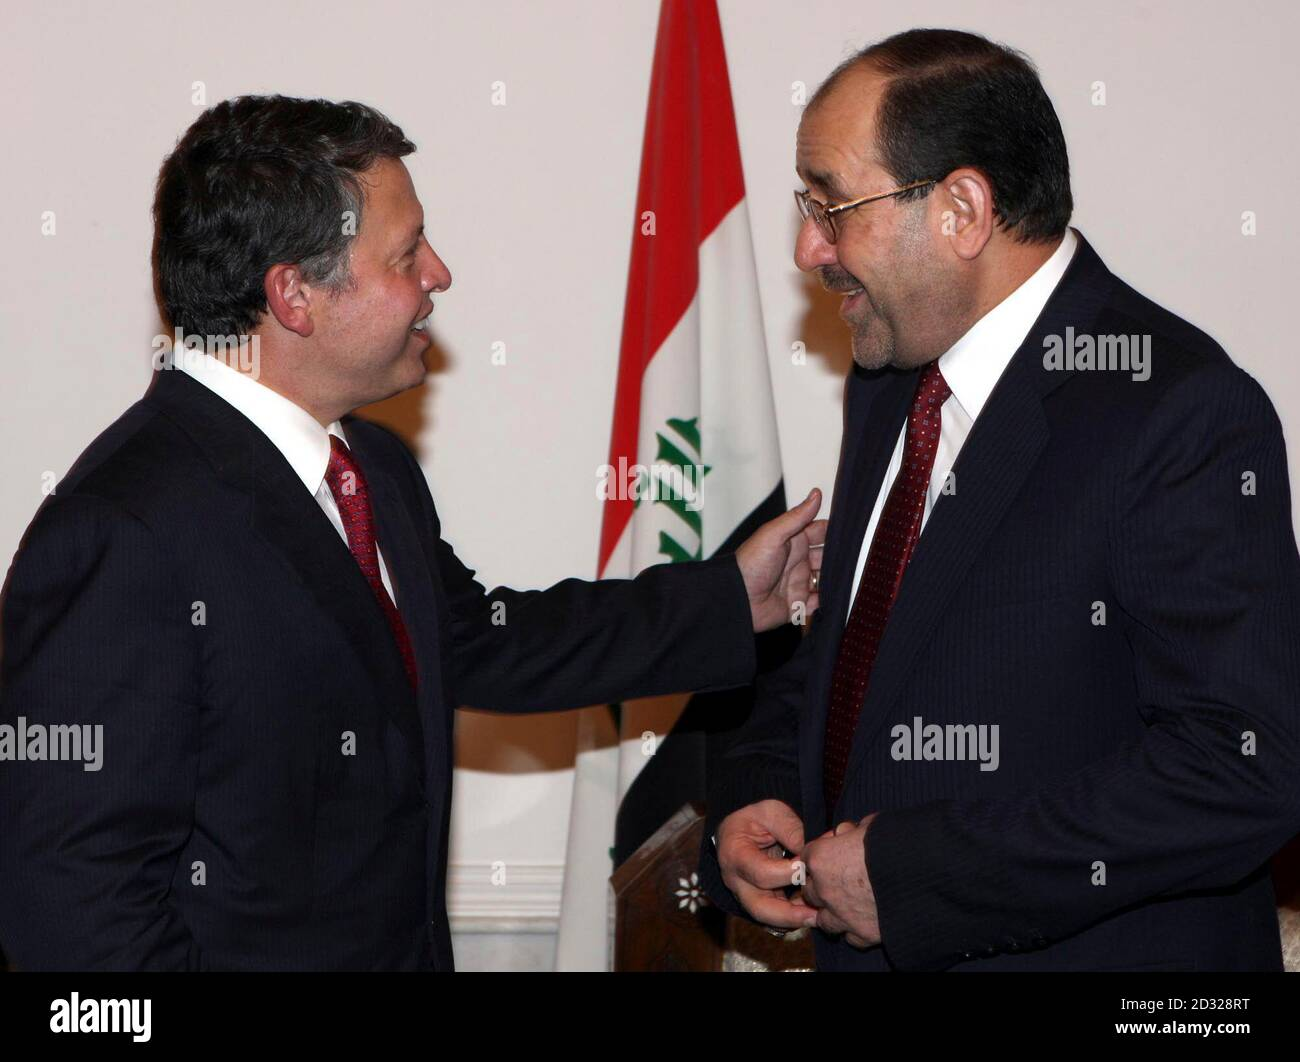 https www alamy com iraqi prime minister nuri al maliki r talks to jordans king abdullah during a meeting in baghdad august 11 2008 king abdullah became on monday the first arab leader to visit iraq since the fall of saddam hussein in 2003 flying to baghdad for a meeting with maliki reutersyousef allan iraq image380522908 html